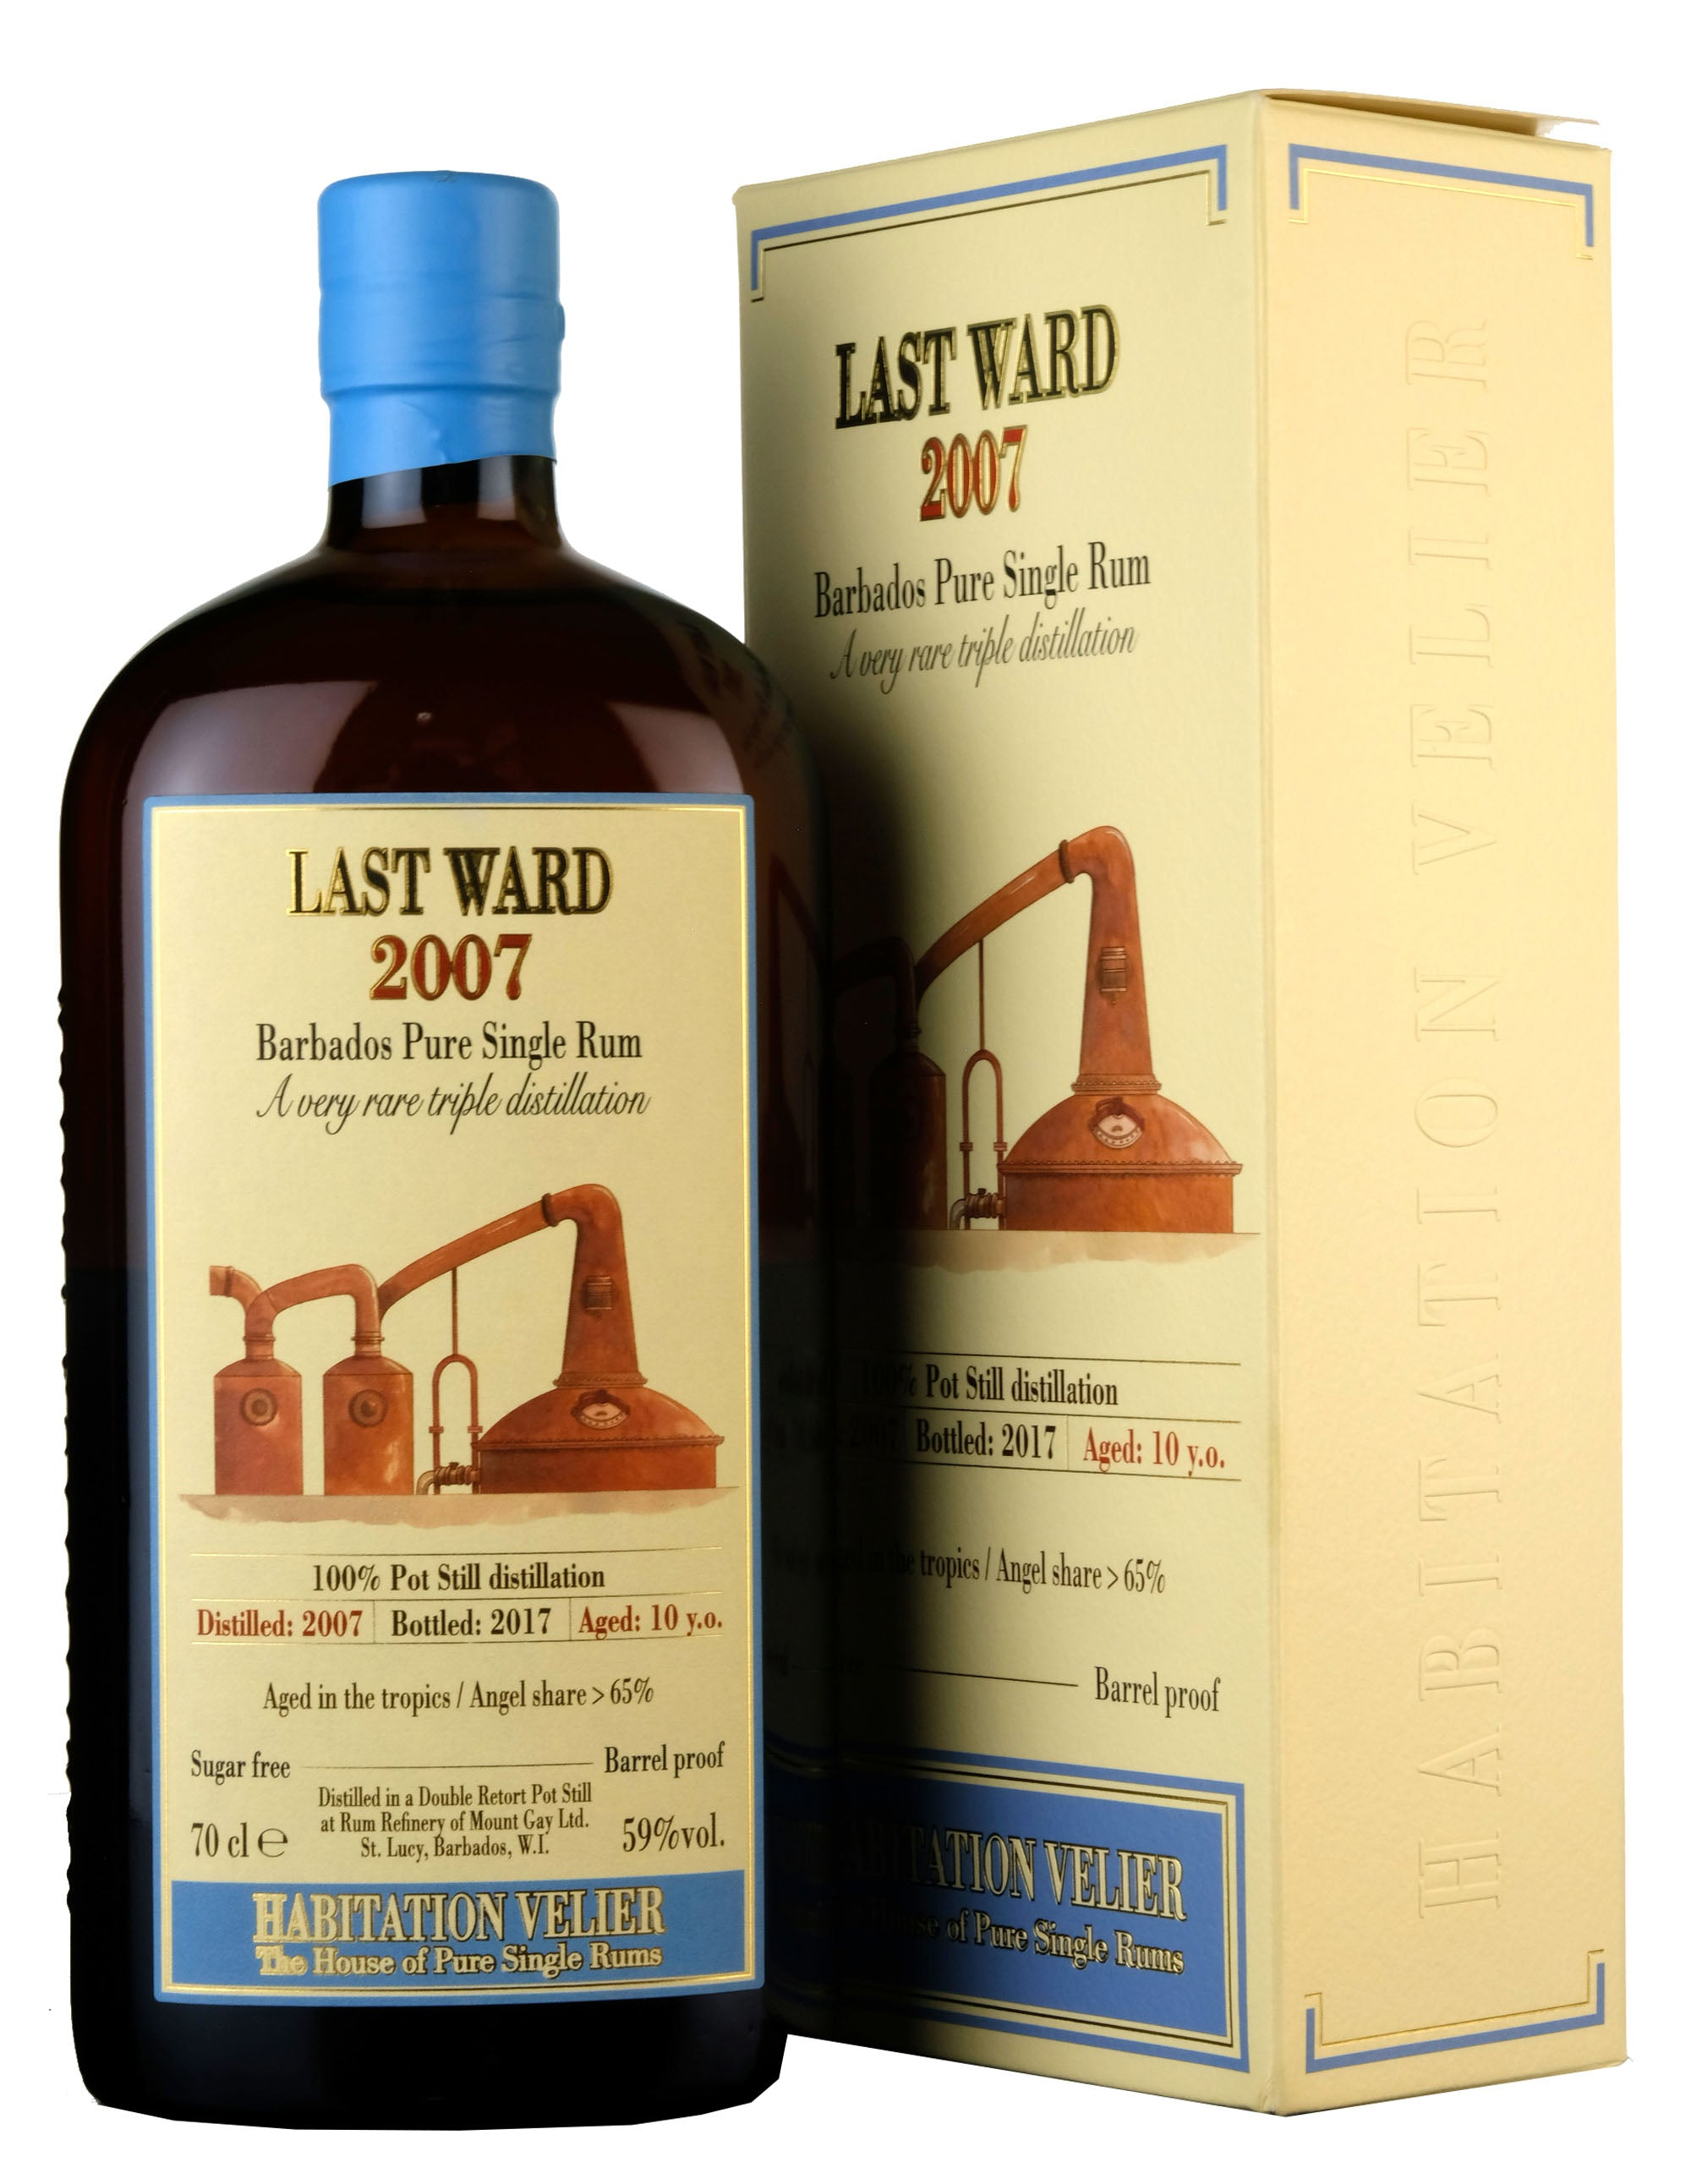 Last Ward (Mount Gay) 2007-2017 | 10 Year Old Habitation Velier